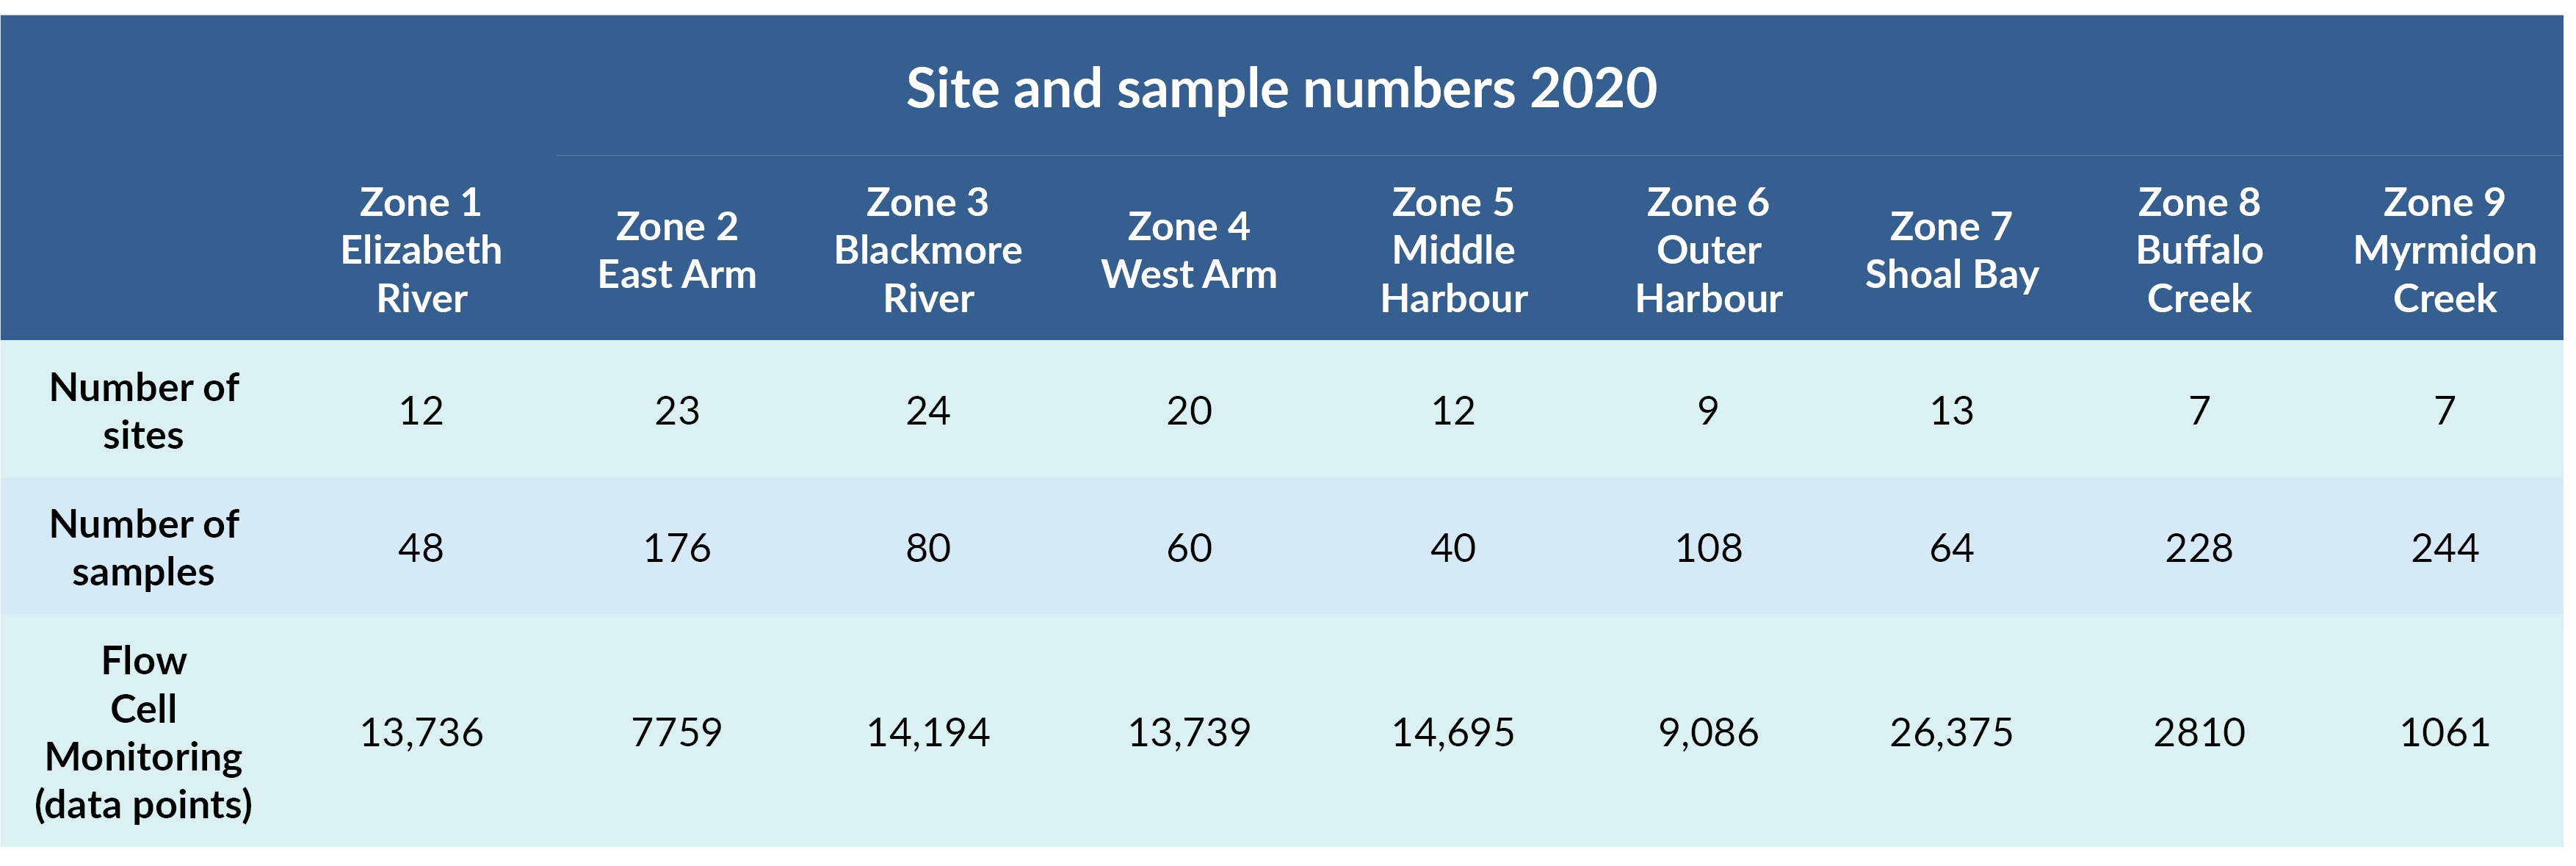 Sites and samples table for 2020